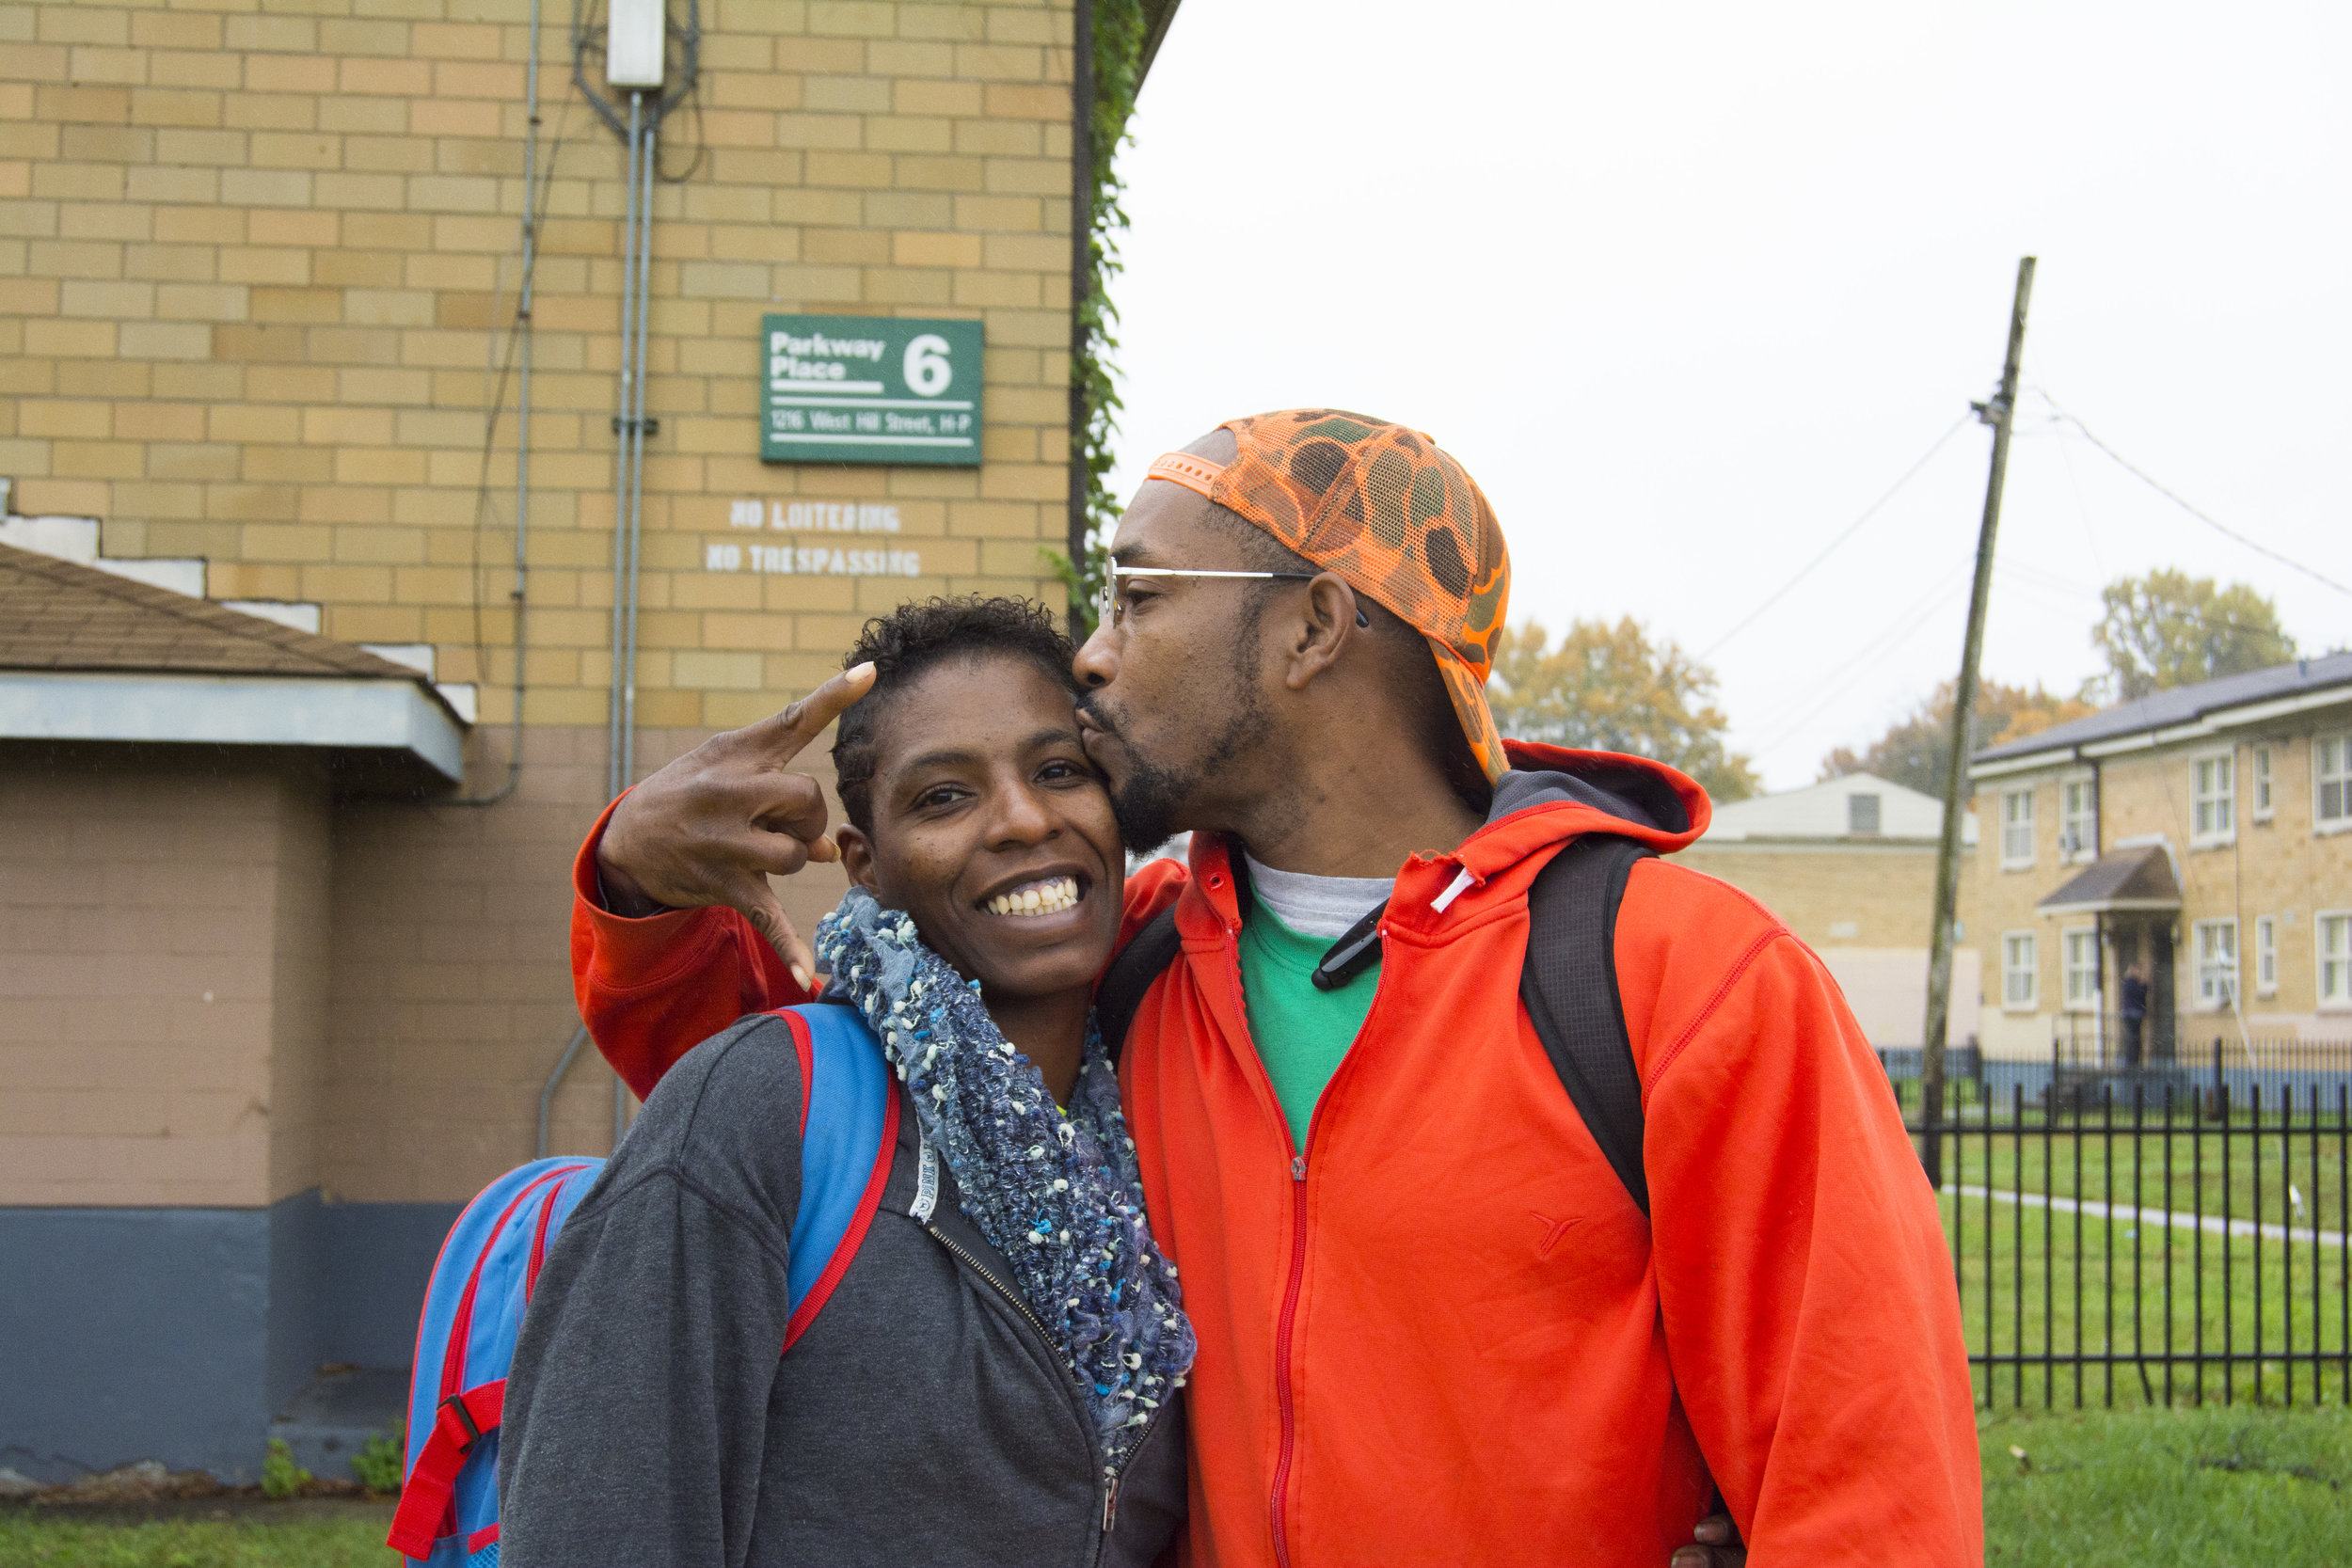 """""""We've been together for 16 years. We started up here. We met up here. I was fresh out of the penitentiary. We done moved outta here, came back here, and moved outta here. My mama live up here, now. This is us. We're in a battle, right now.  We've been railroaded by CPS. We gotta go to WHAS, this week. They're doing a story on us. I got Christopher 2X in my corner. I done talked to him for about an hour on my phone. We just went to court yesterday. We gotta go take a pee test today. They got us doing the drug screens. We've been clean for eight months. We just now getting back, you know. We've been in this struggle together. You know what I mean? We done went through the bad and we've been through the good, but this is a reflection of our former self. It's like looking in the mirror. When we got up and used to look in the mirror, we've seen addicts and alcoholics. We don't see that, now. We see us.  Now, we're getting up and we're trudging. We're out here in the rain to go take a pee test. We just got our house. Everything is coming full circle, now. So the fact that you are out here taking a picture of us, is almost surreal. What you're seeing now, is almost due for a picture. You see what I'm saying? We've been through the storm. This is Pick Life. When you take the picture, use #PickLife. That's our motto. We got 9 kids and all of our kids have Pick Life. Two of my children got it tattooed on them. I'm very proud of that because back in the day, in Africa, that's what they did to represent their tribes. They would put their tribal name on them. Ours is Pick Life because our last name is Picken and we pick life over death. That's our choice. You know what I mean? We pick life. Hashtag Pick Life! Plus, she's a cancer survivor, so our story is big. This picture is probably gonna make you famous because we're taking it to the top. God makes no mistakes."""" - James & LaShonda, Park Hill"""